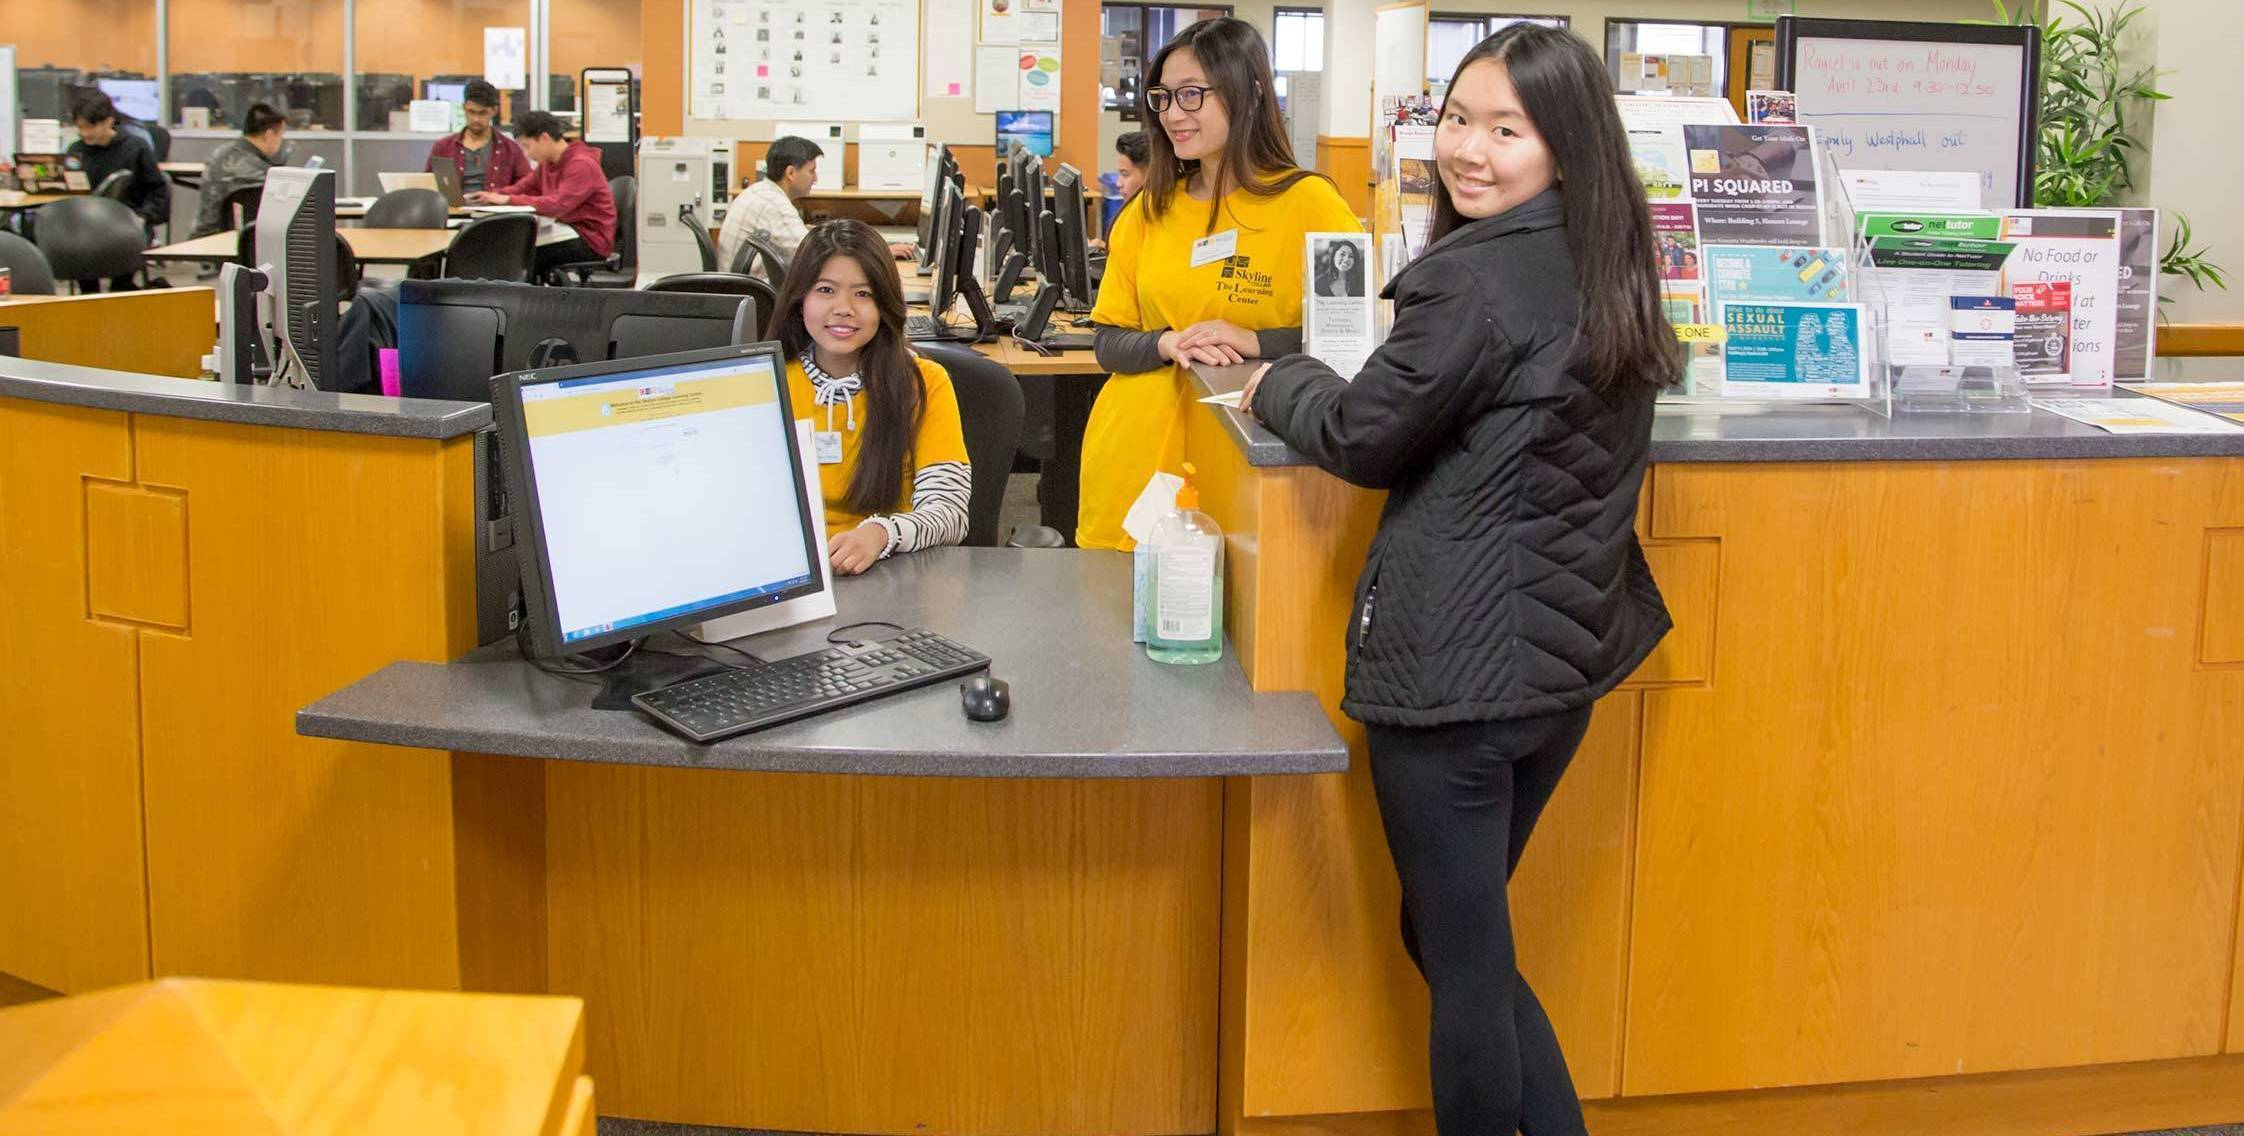 checking students into learning center